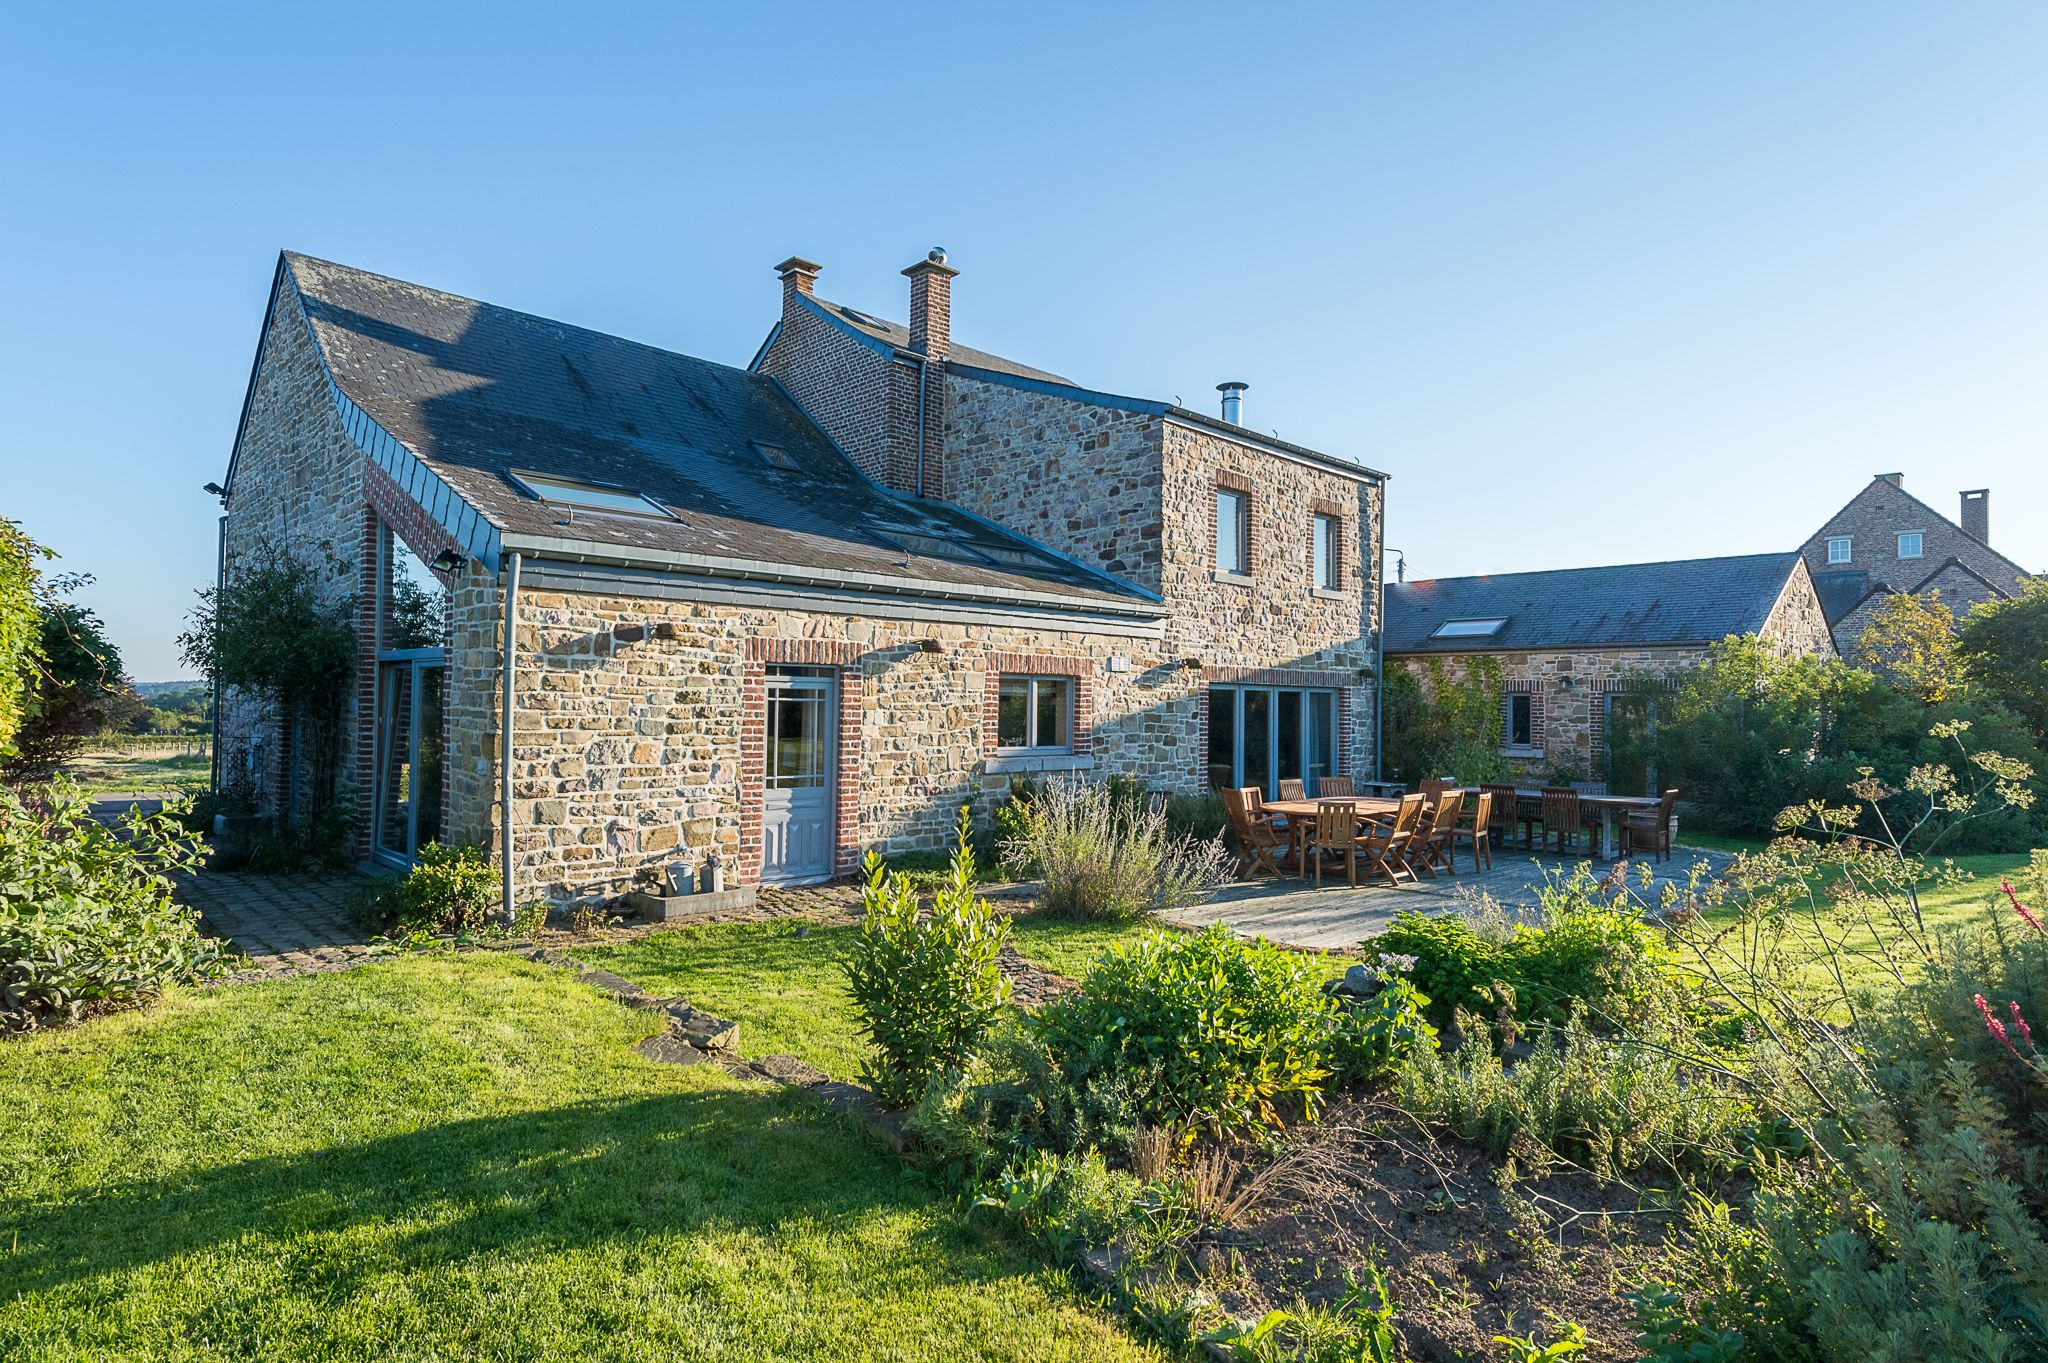 Champ du coq: charming country cottage in the province of Namur, Belgium